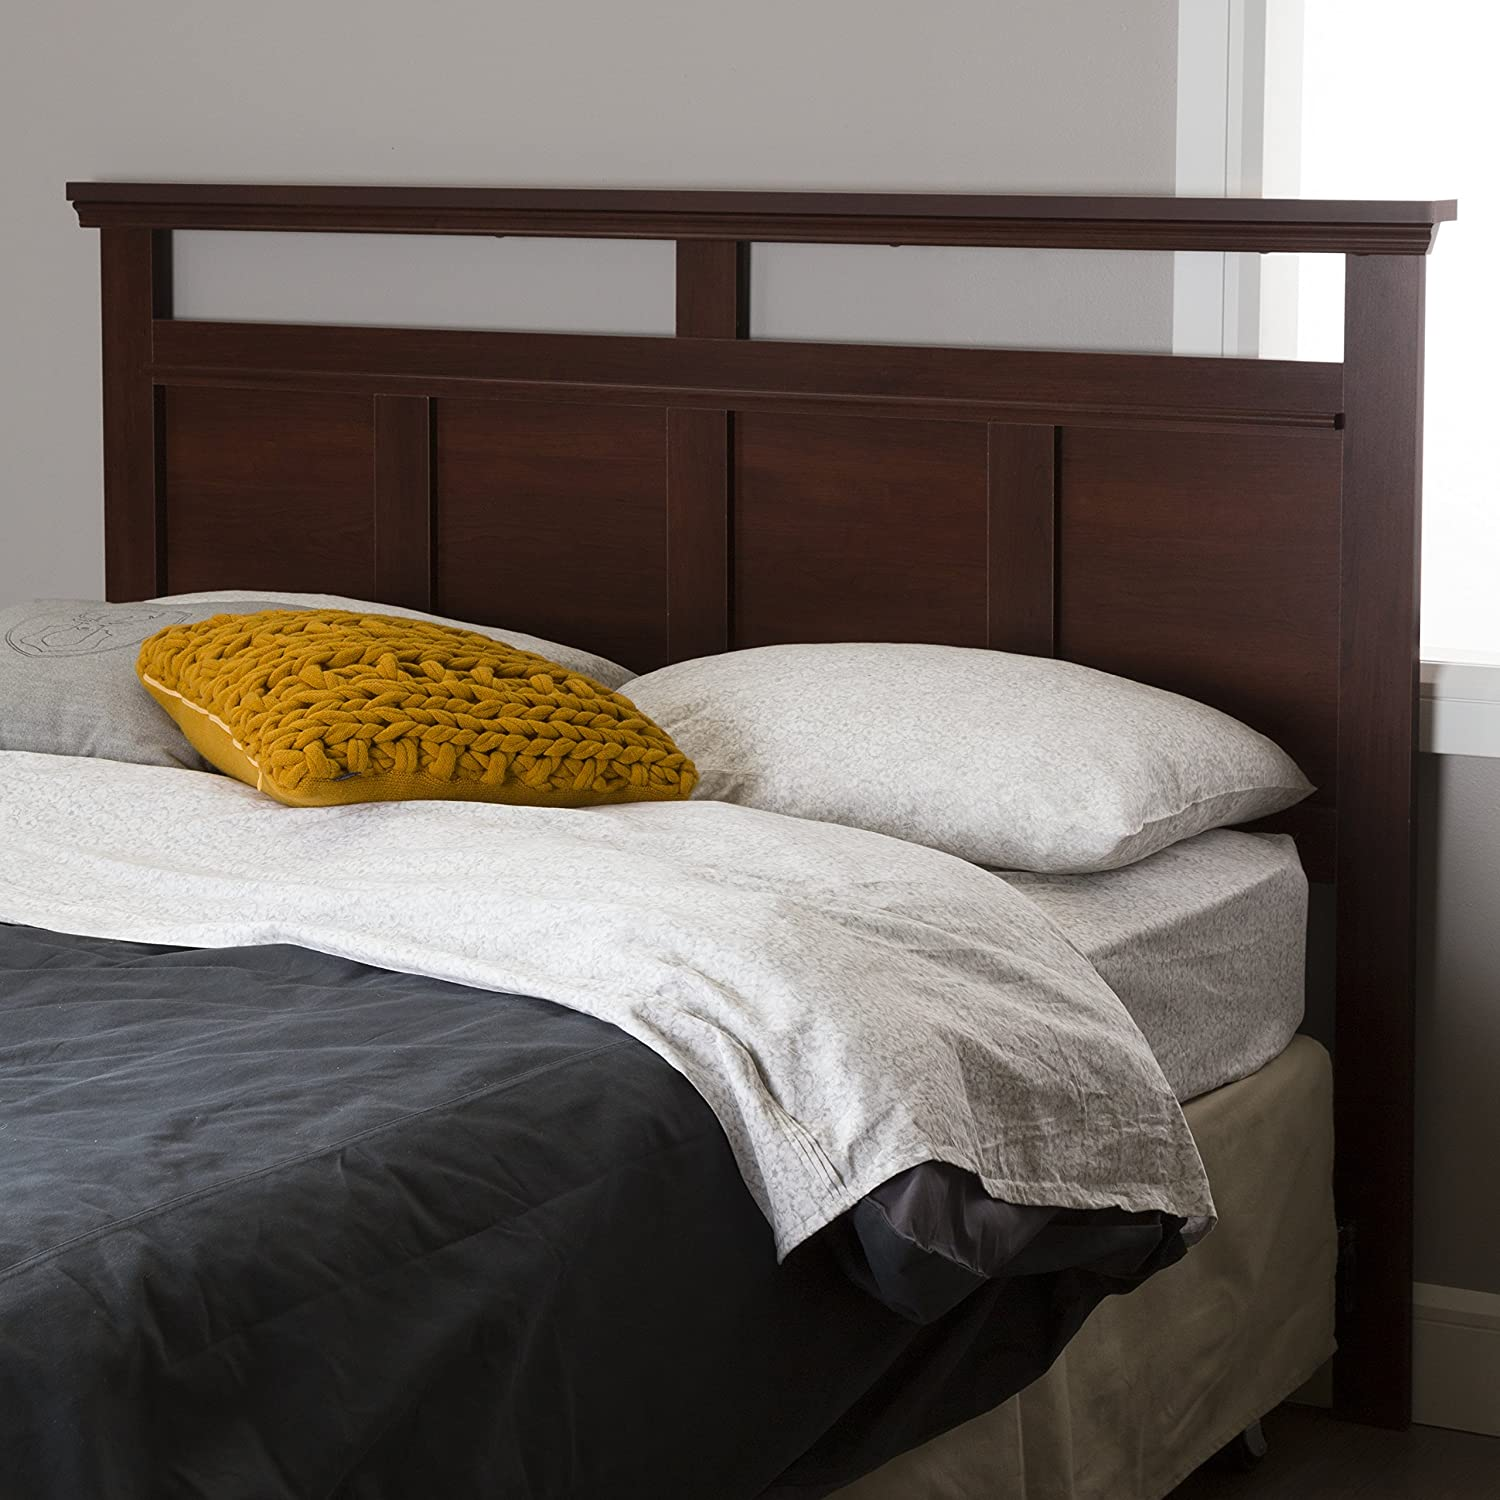 ip full south headboard multiple com holland shore finishes queen walmart